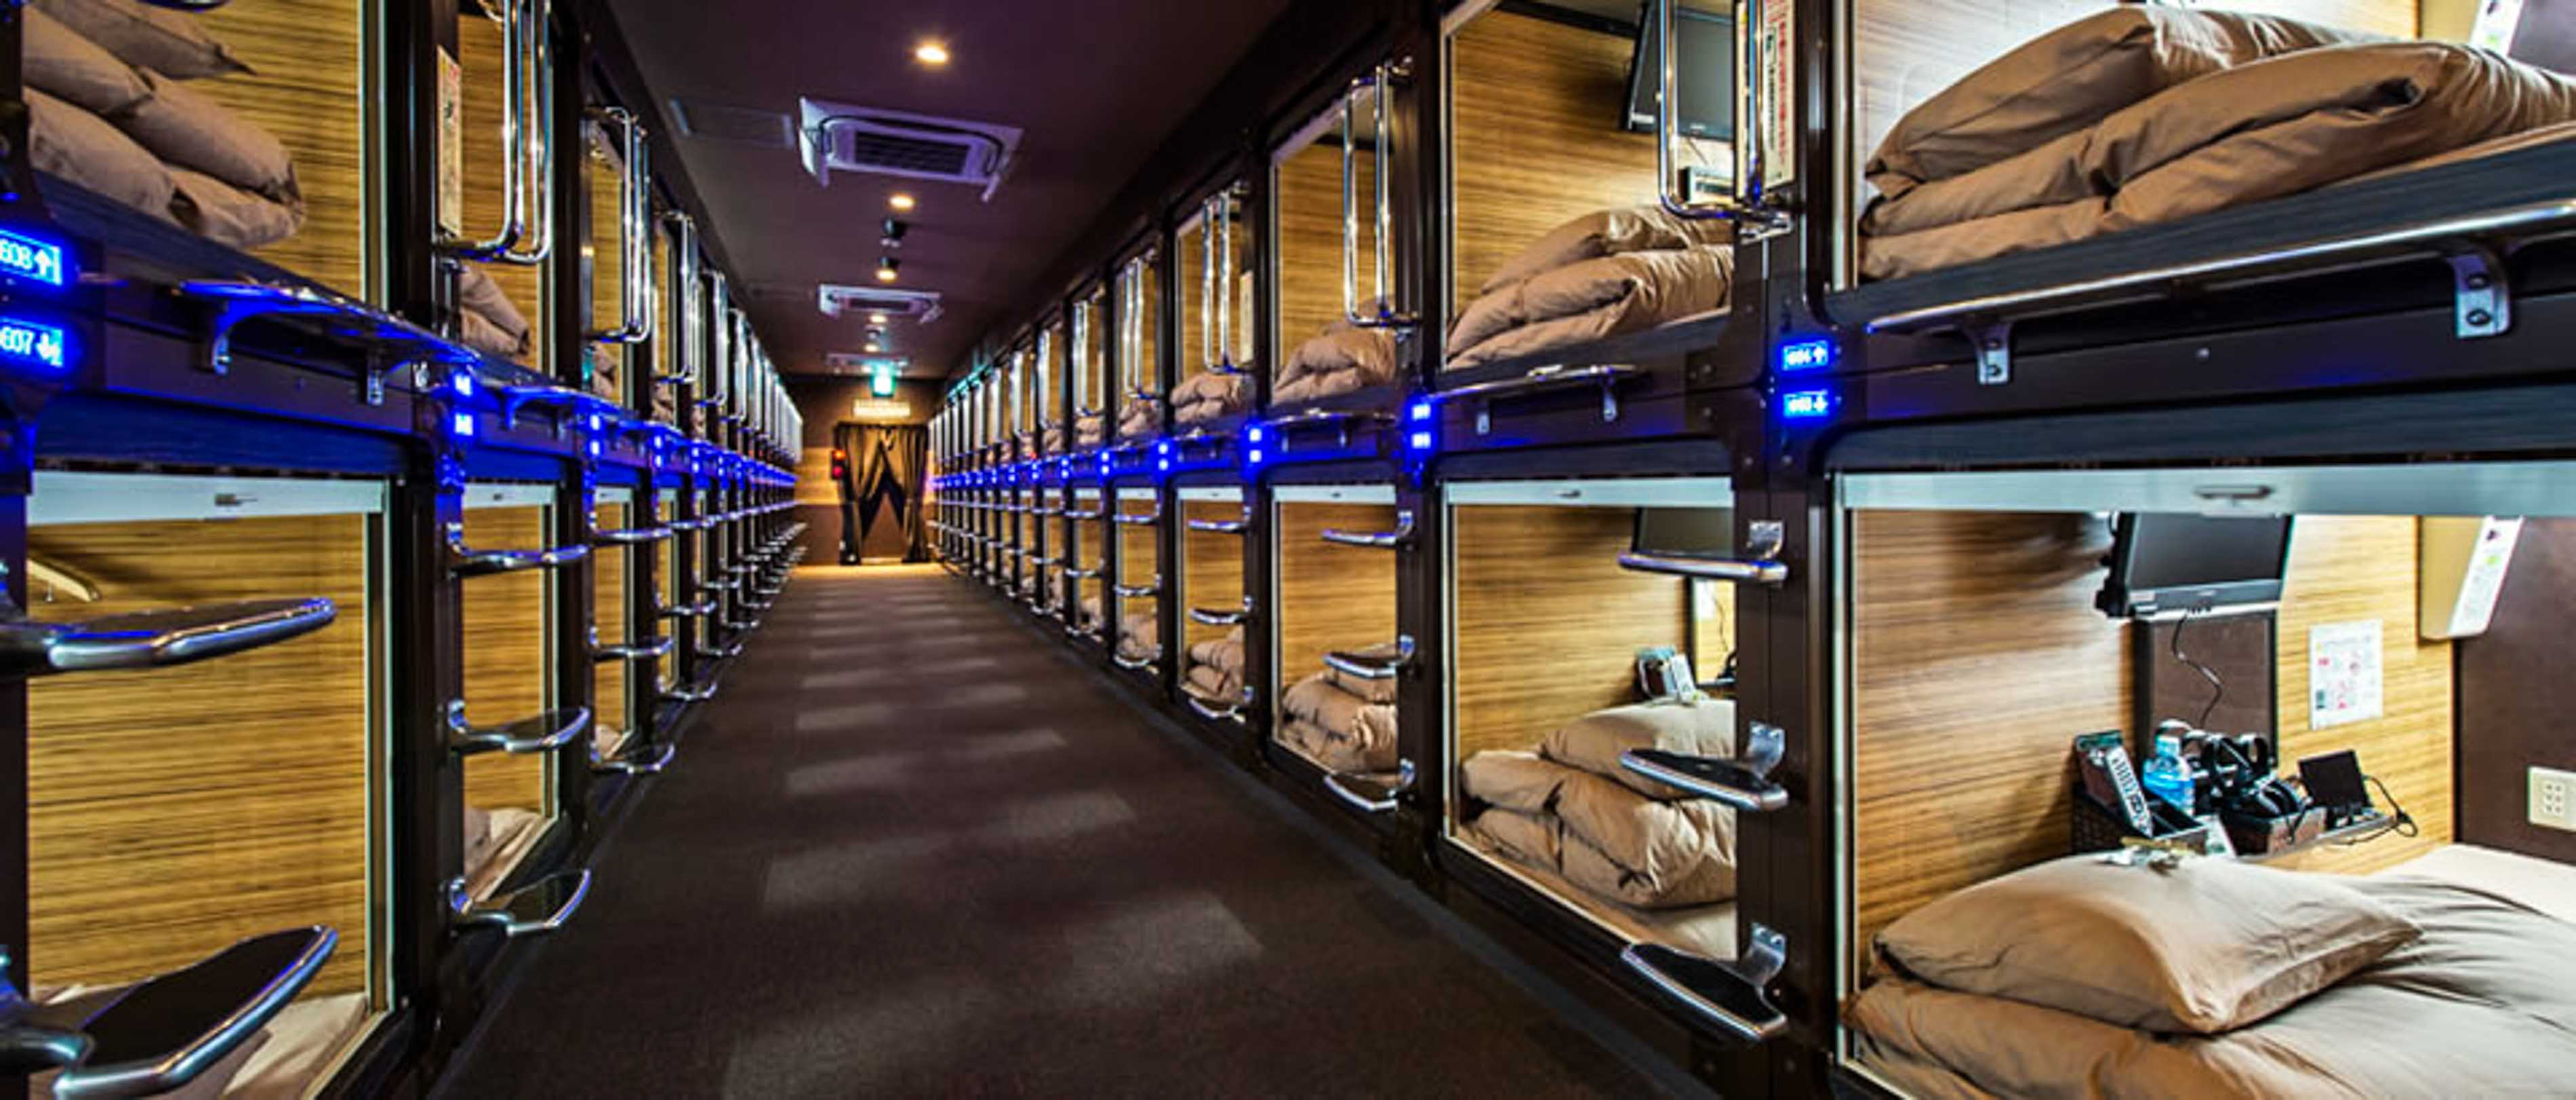 What 39 s it like inside tokyo s capsule hotels for Design hotel japan